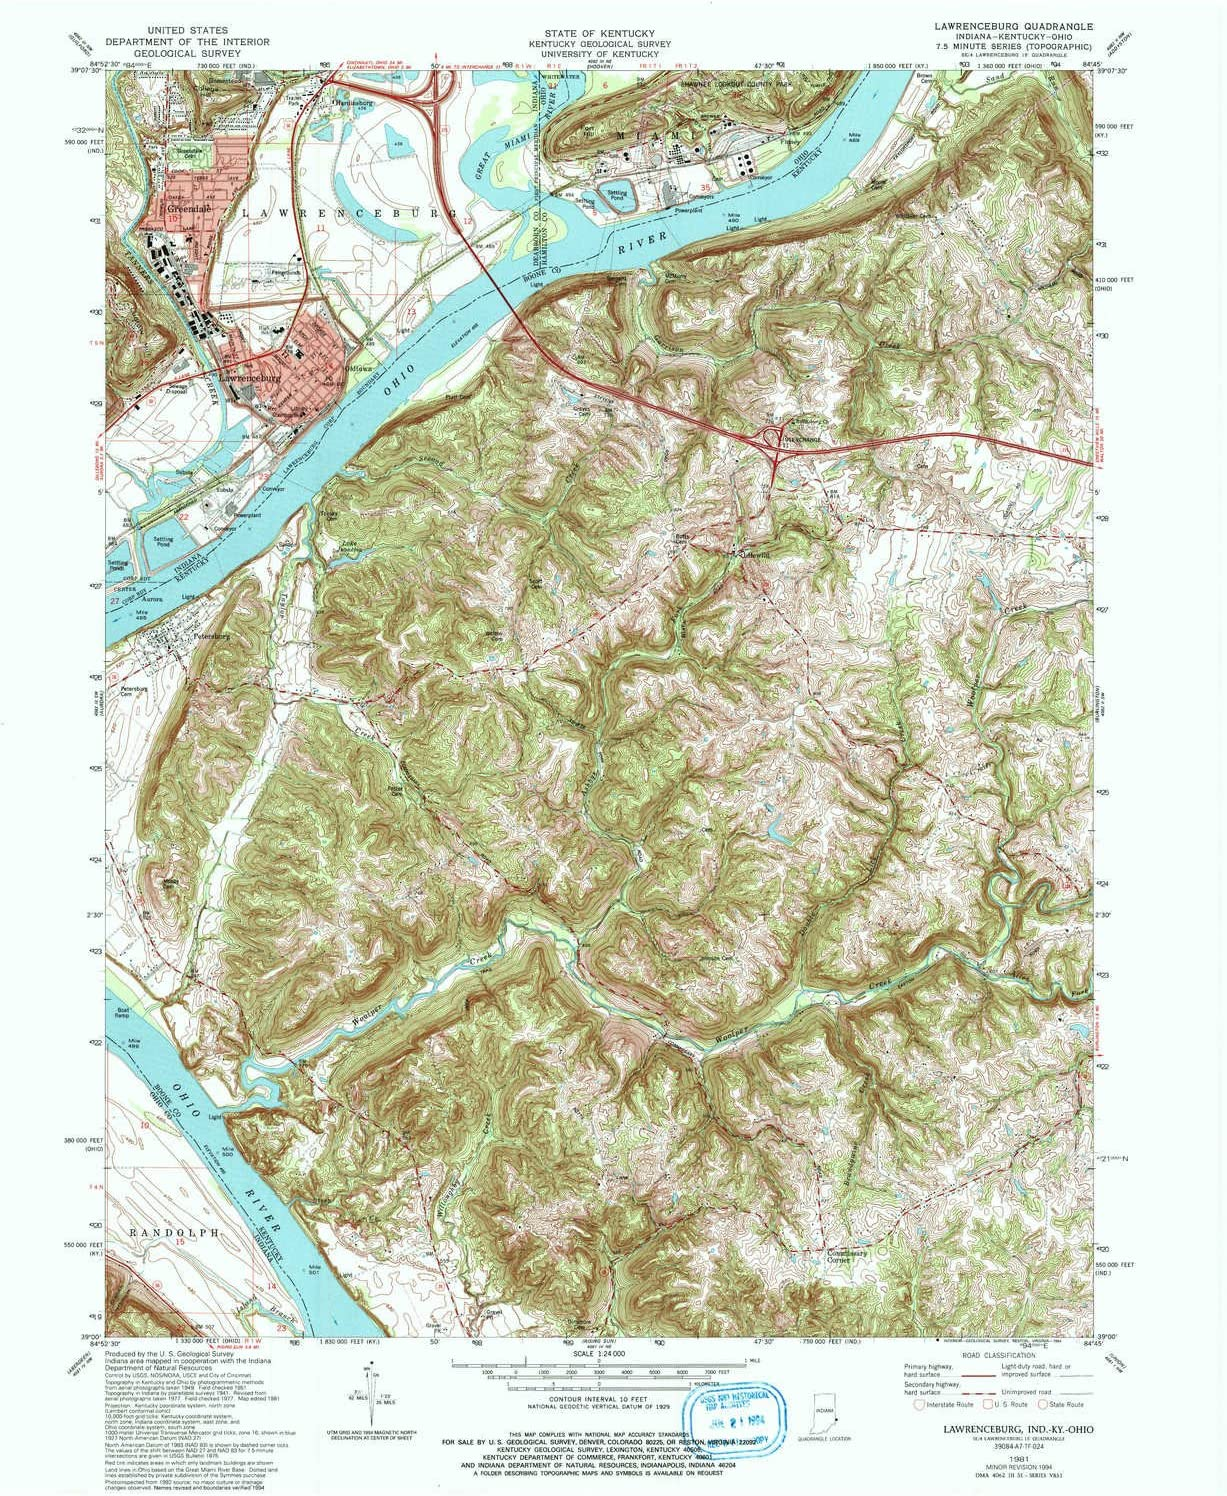 Historical 27.3 x 22 in Updated 2004 2003 YellowMaps Mc Farland TN topo map 1:24000 Scale 7.5 X 7.5 Minute